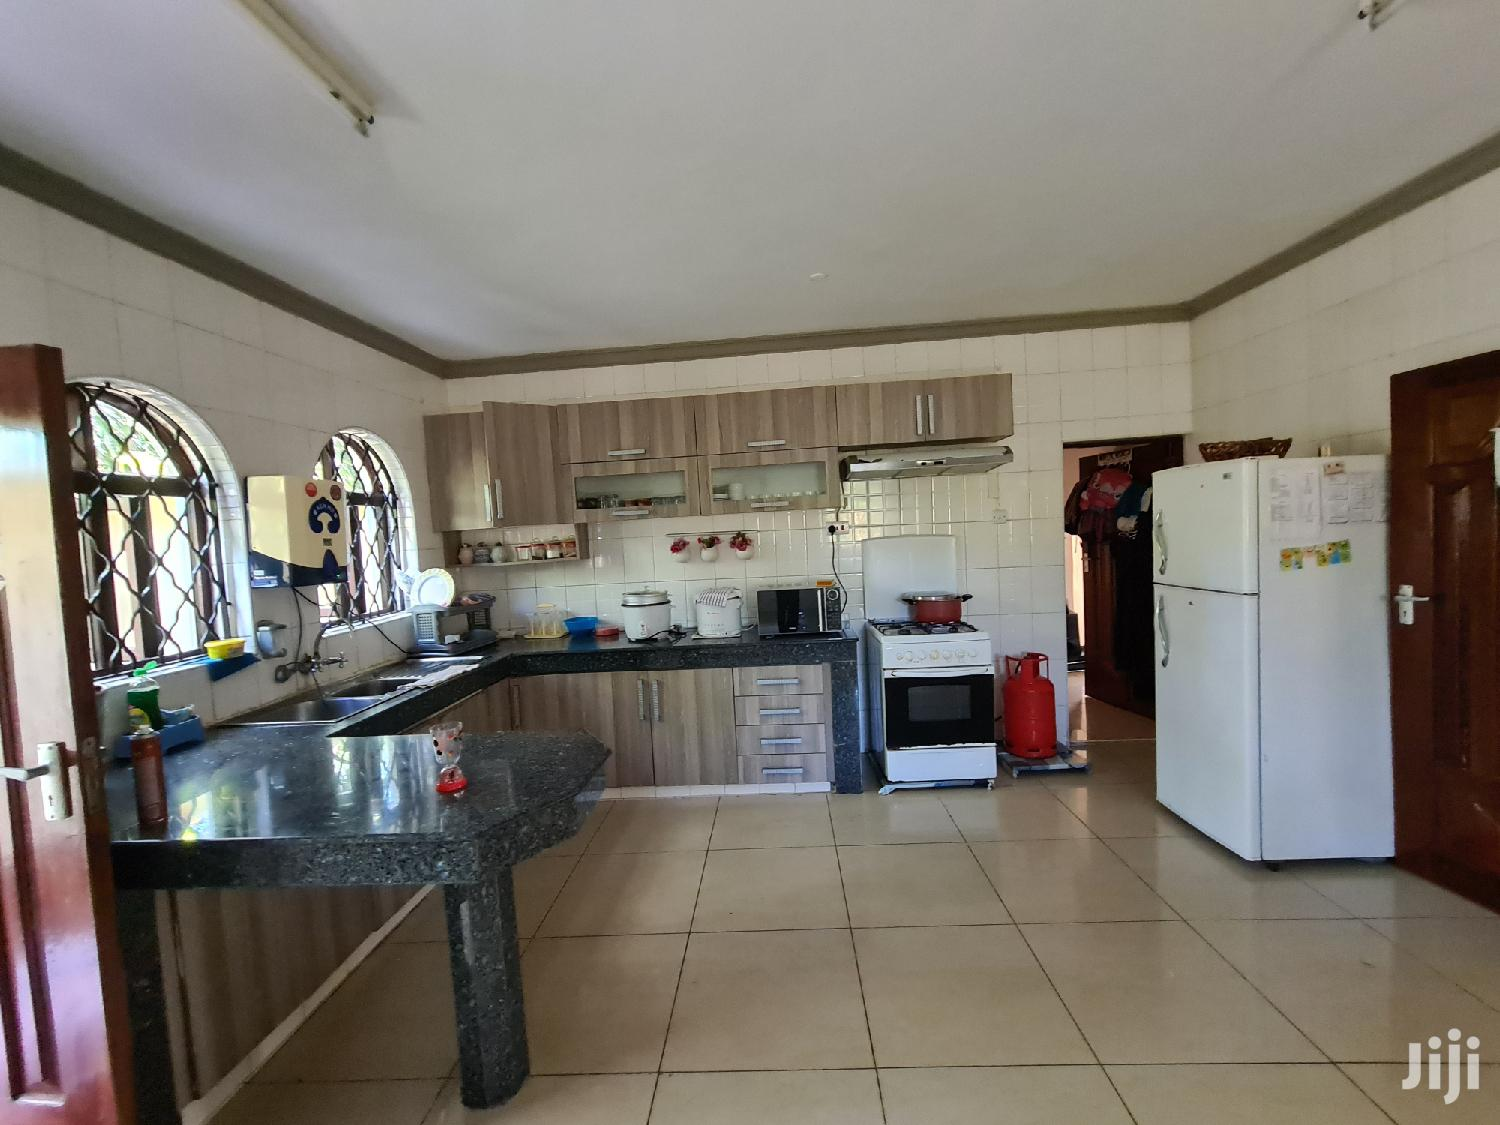 Exclusive 4 Bedroom Maisonette In Nyali, Mombasa For Sale . | Houses & Apartments For Sale for sale in Nyali, Mombasa, Kenya